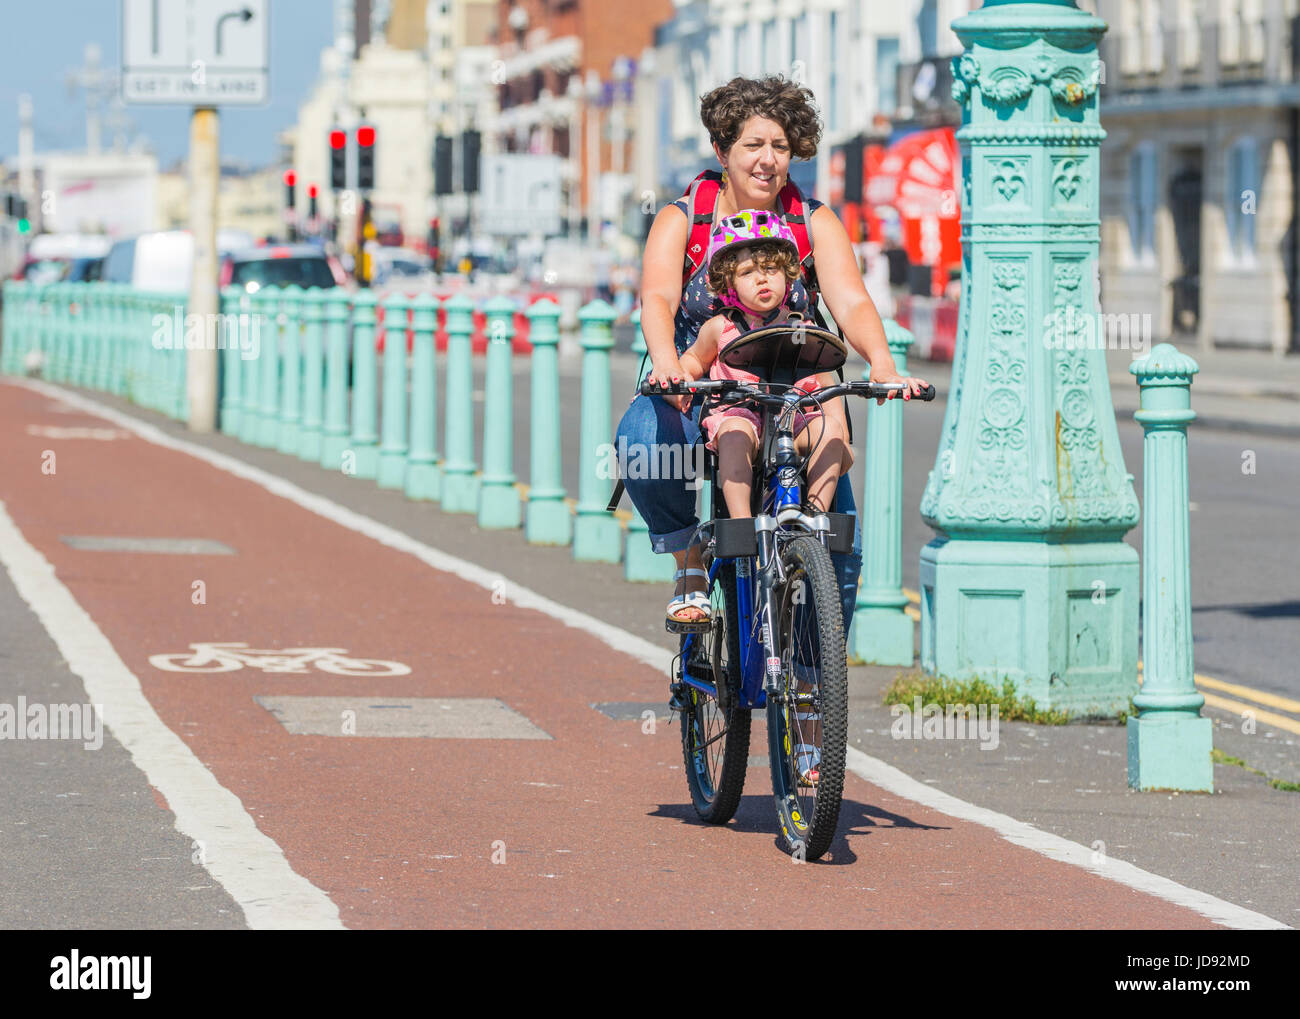 Cycling with a child. Woman cycling along a cycle path carrying a child. - Stock Image